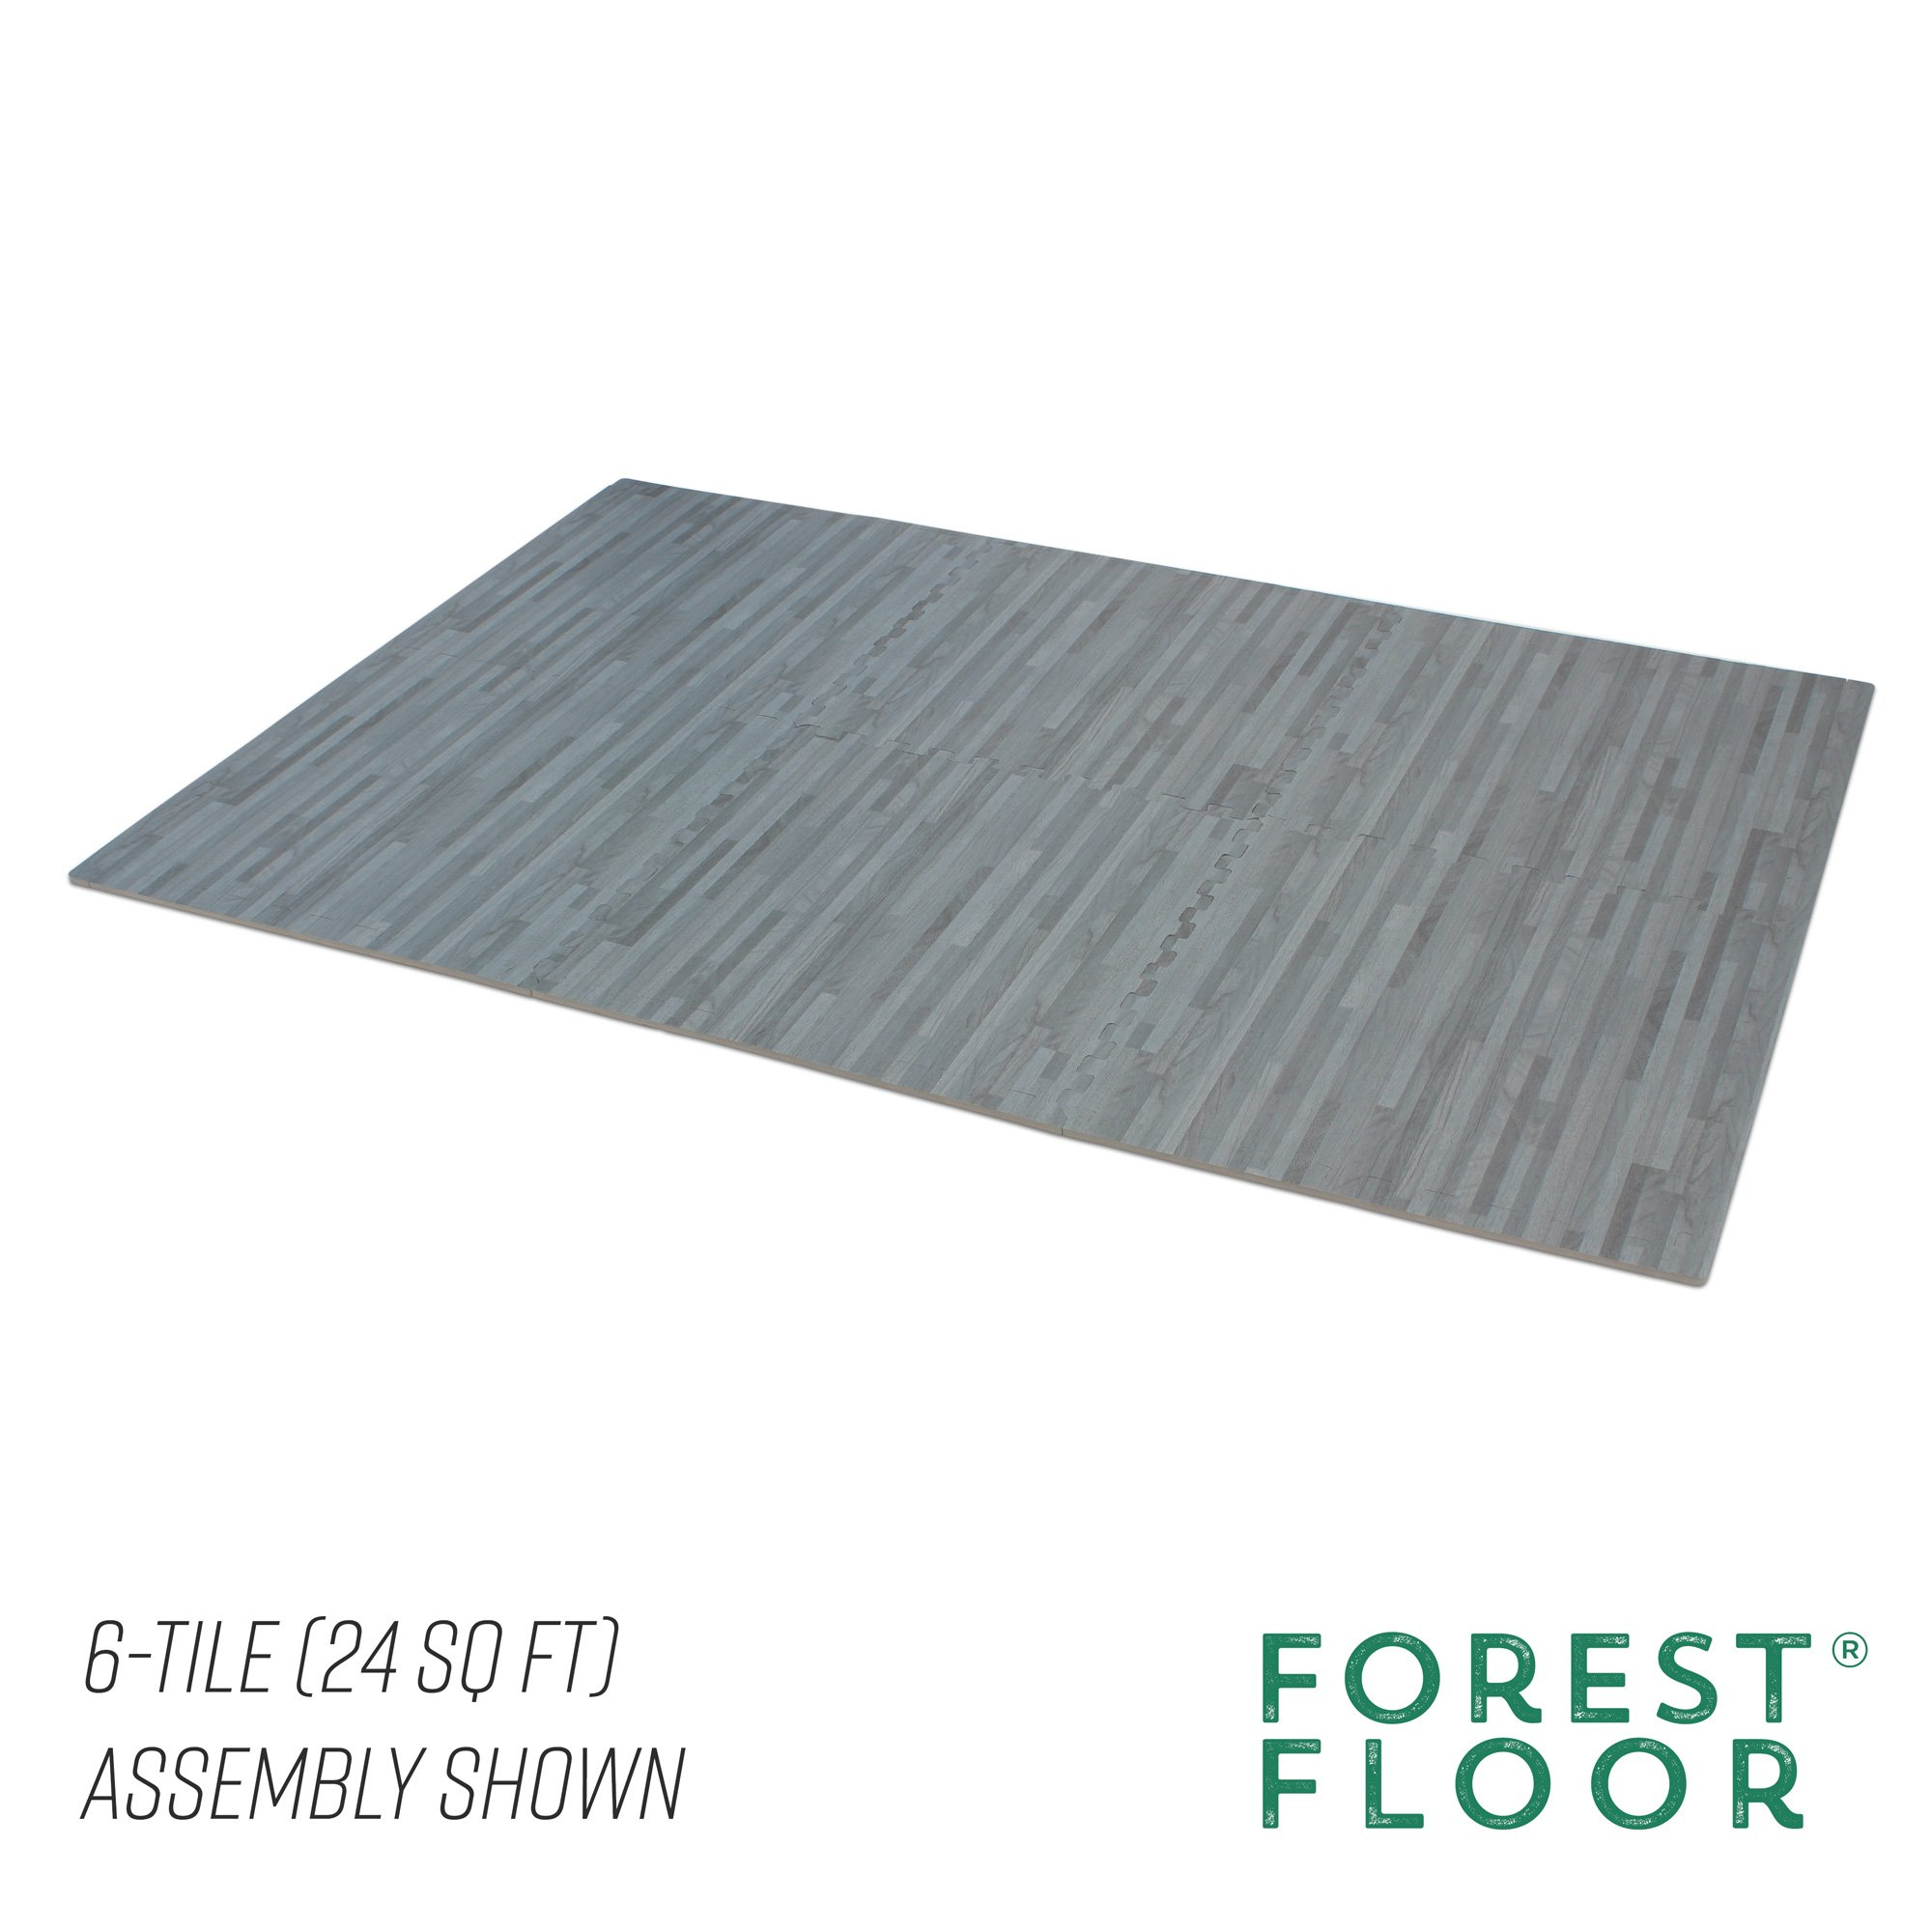 Forest Floor 3/8'' Thick Printed Wood Grain Interlocking Foam Floor Mats, 16 Sq Ft (4 Tiles), Slate by Forest Floor (Image #5)